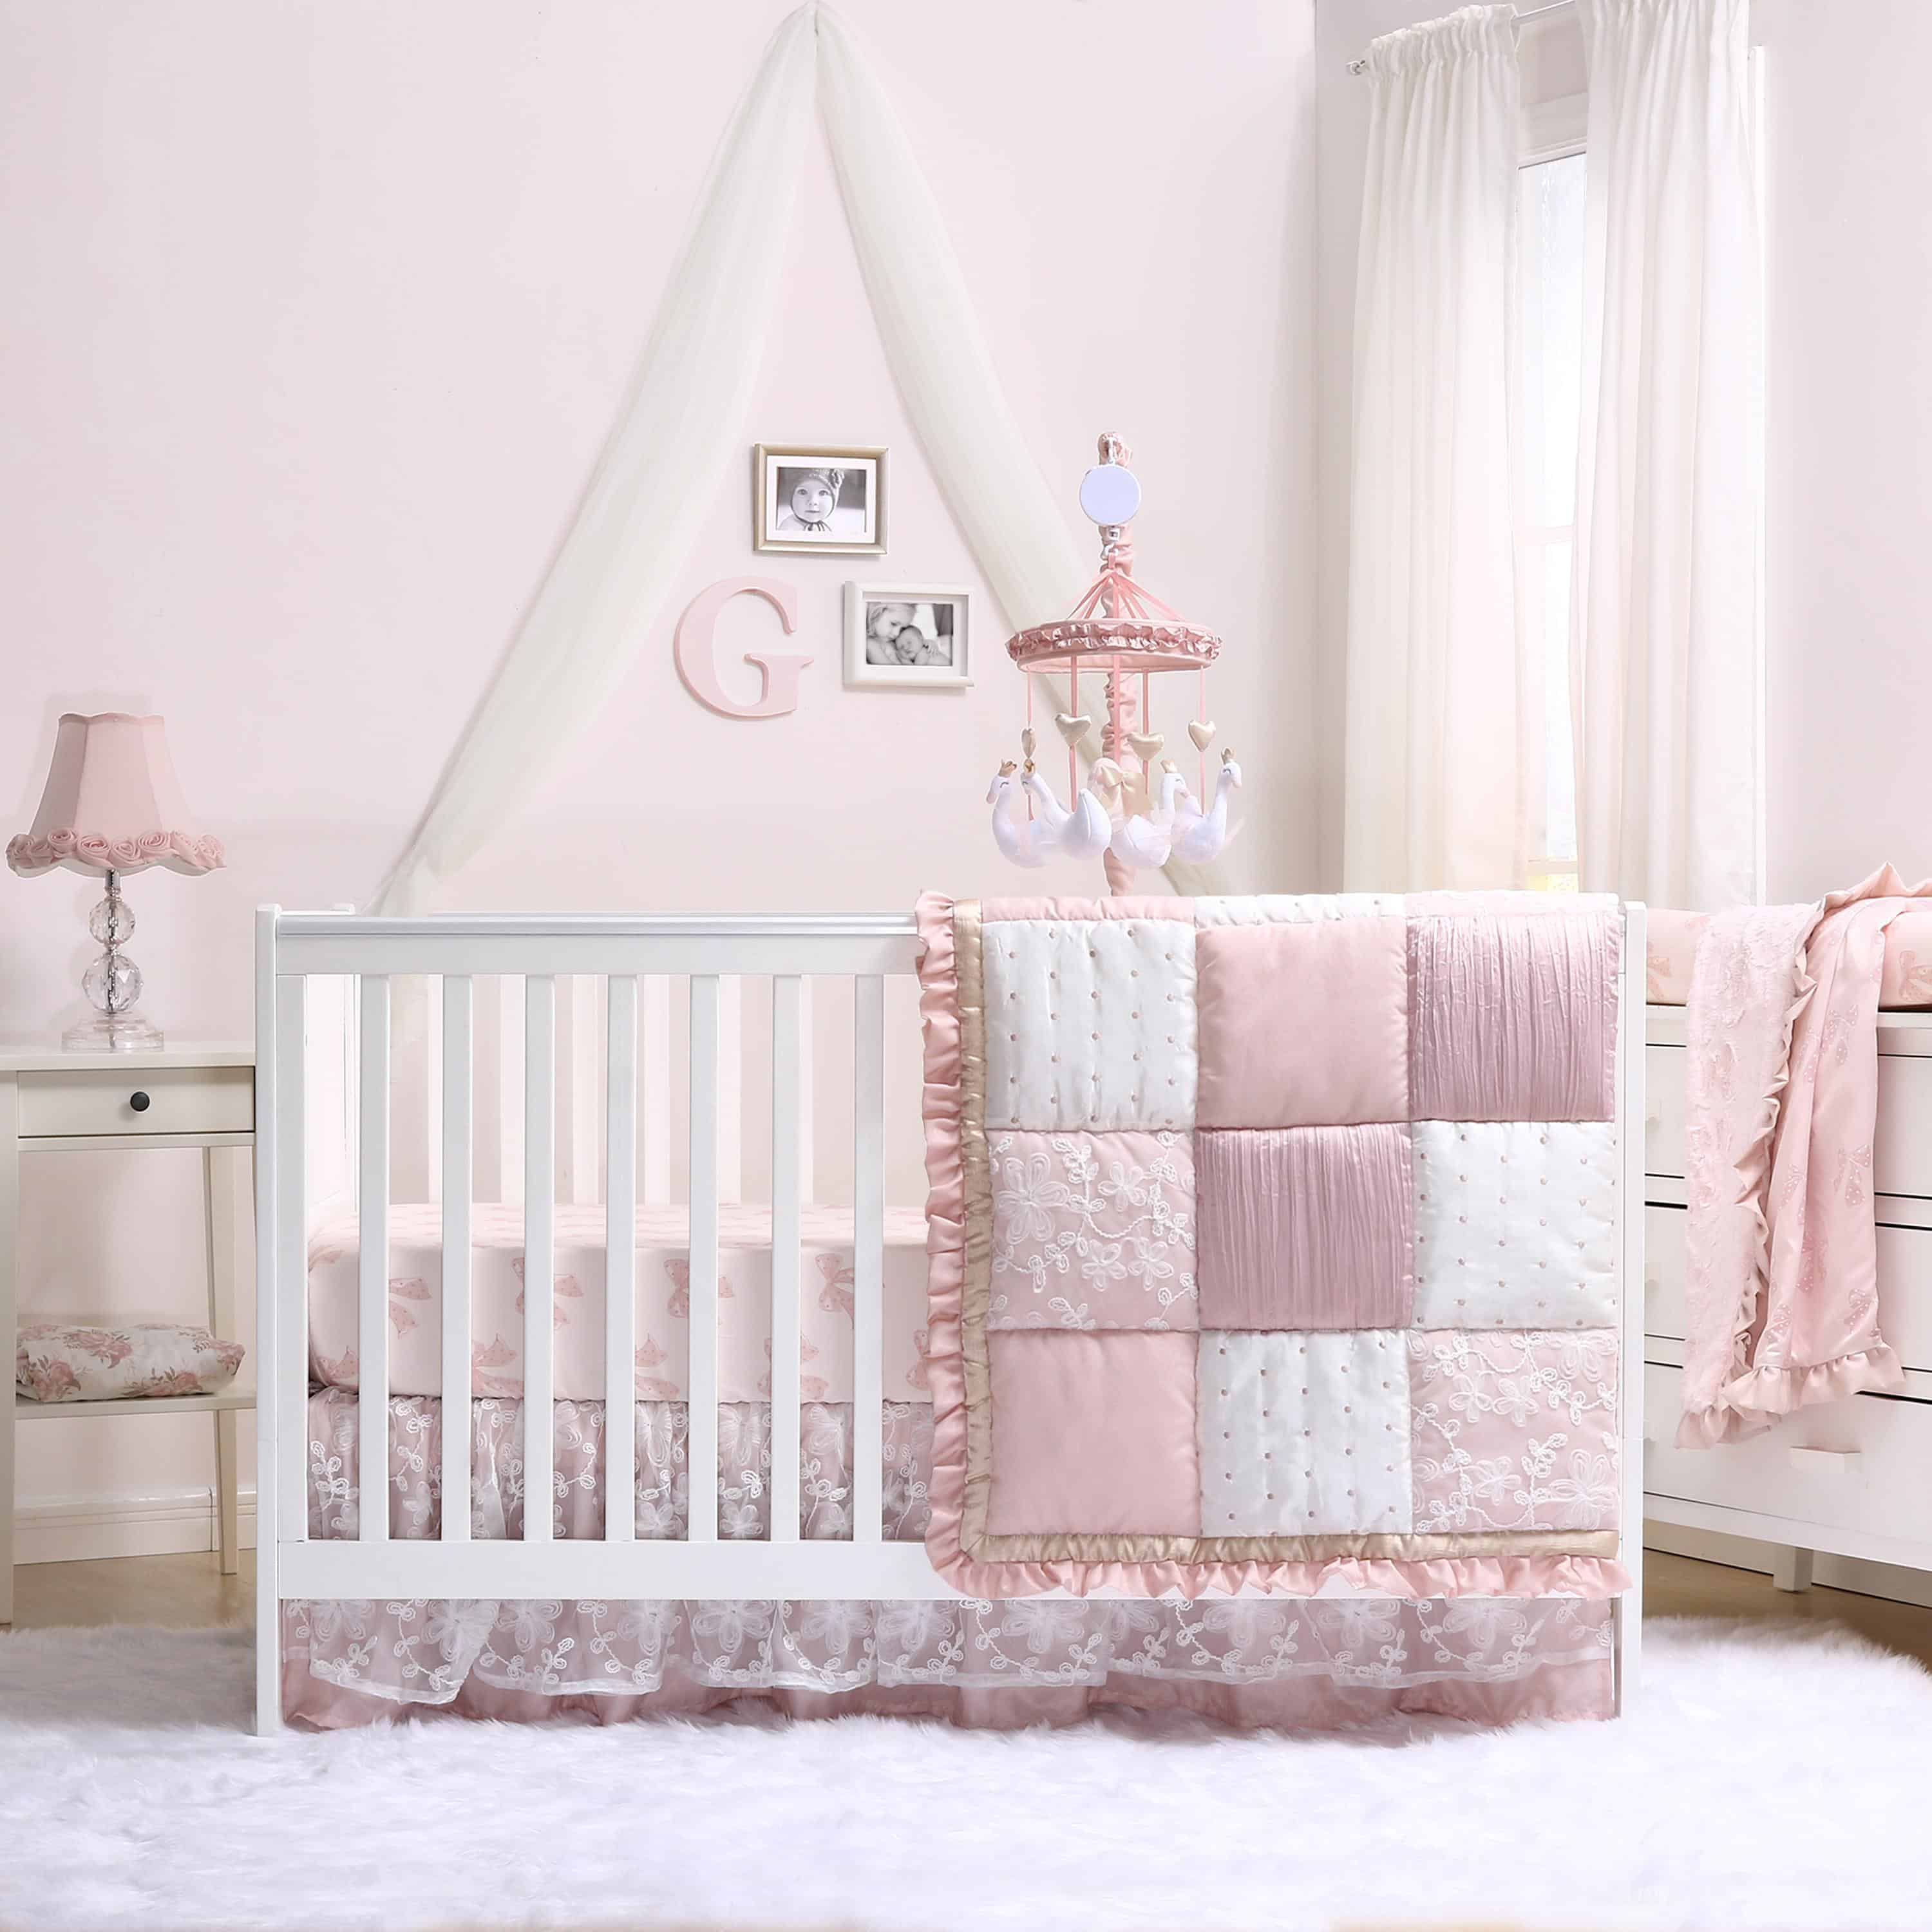 Choosing The Right Bedding For A Crib